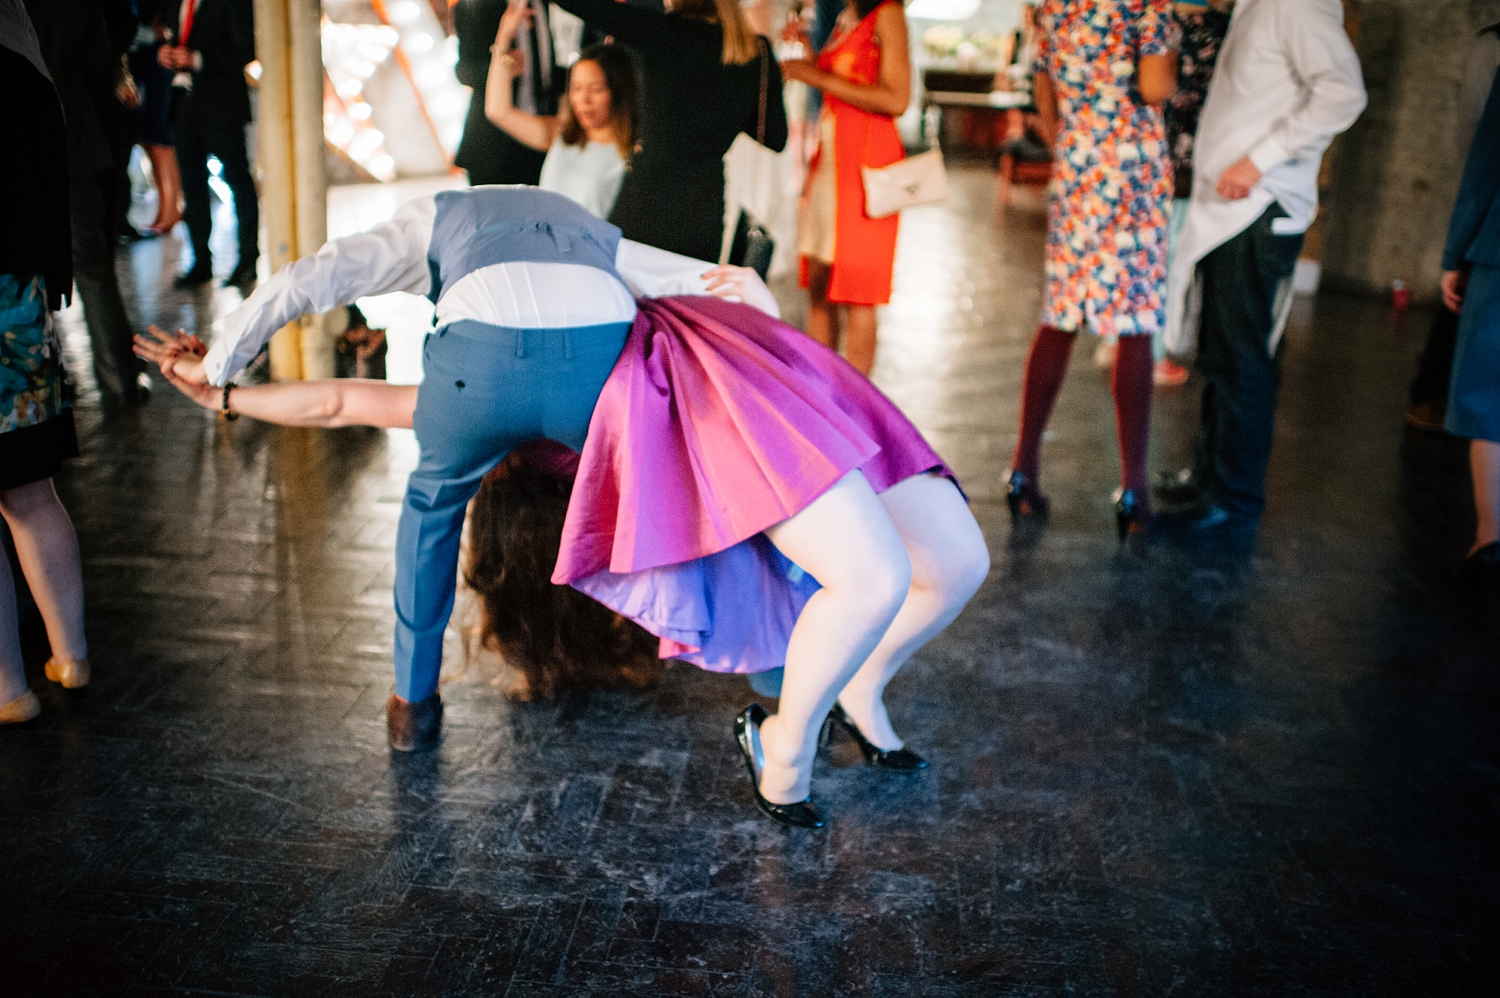 0224-lisa-devine-alternative-wedding-photography-london-hackney-dalston-london-photography-townhall-hotel.JPG